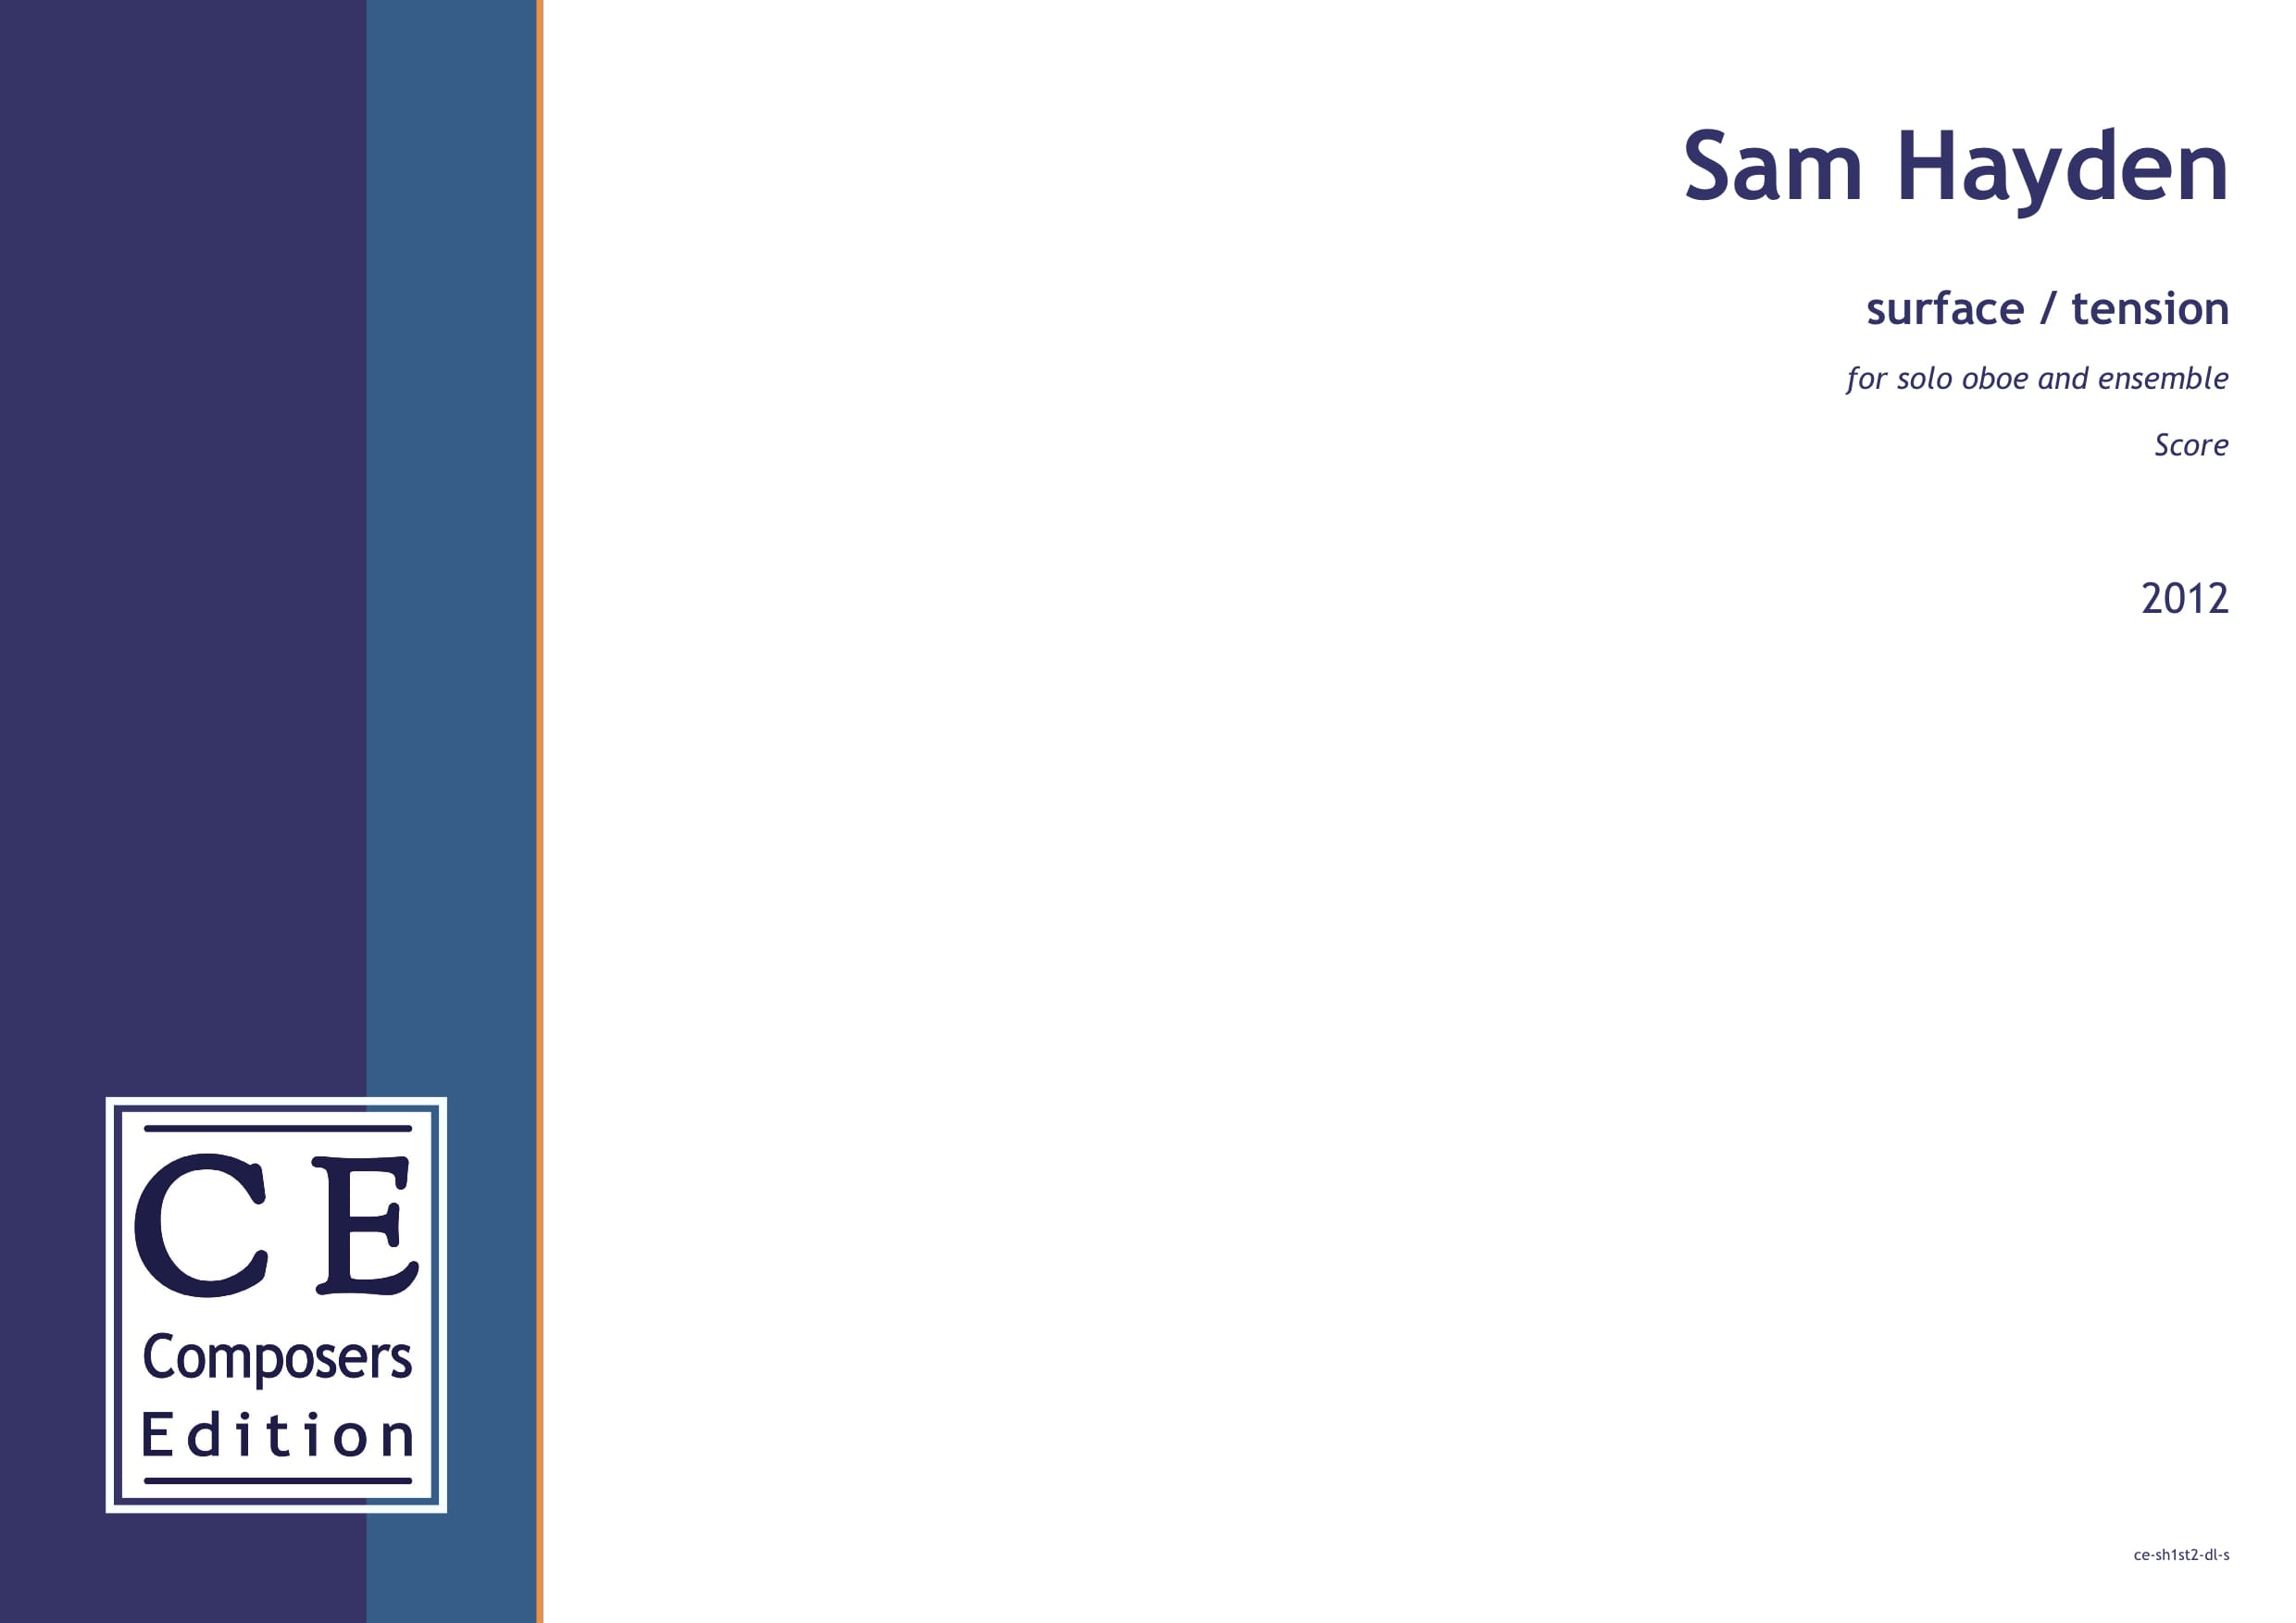 Sam Hayden: surface / tension for solo oboe and ensemble